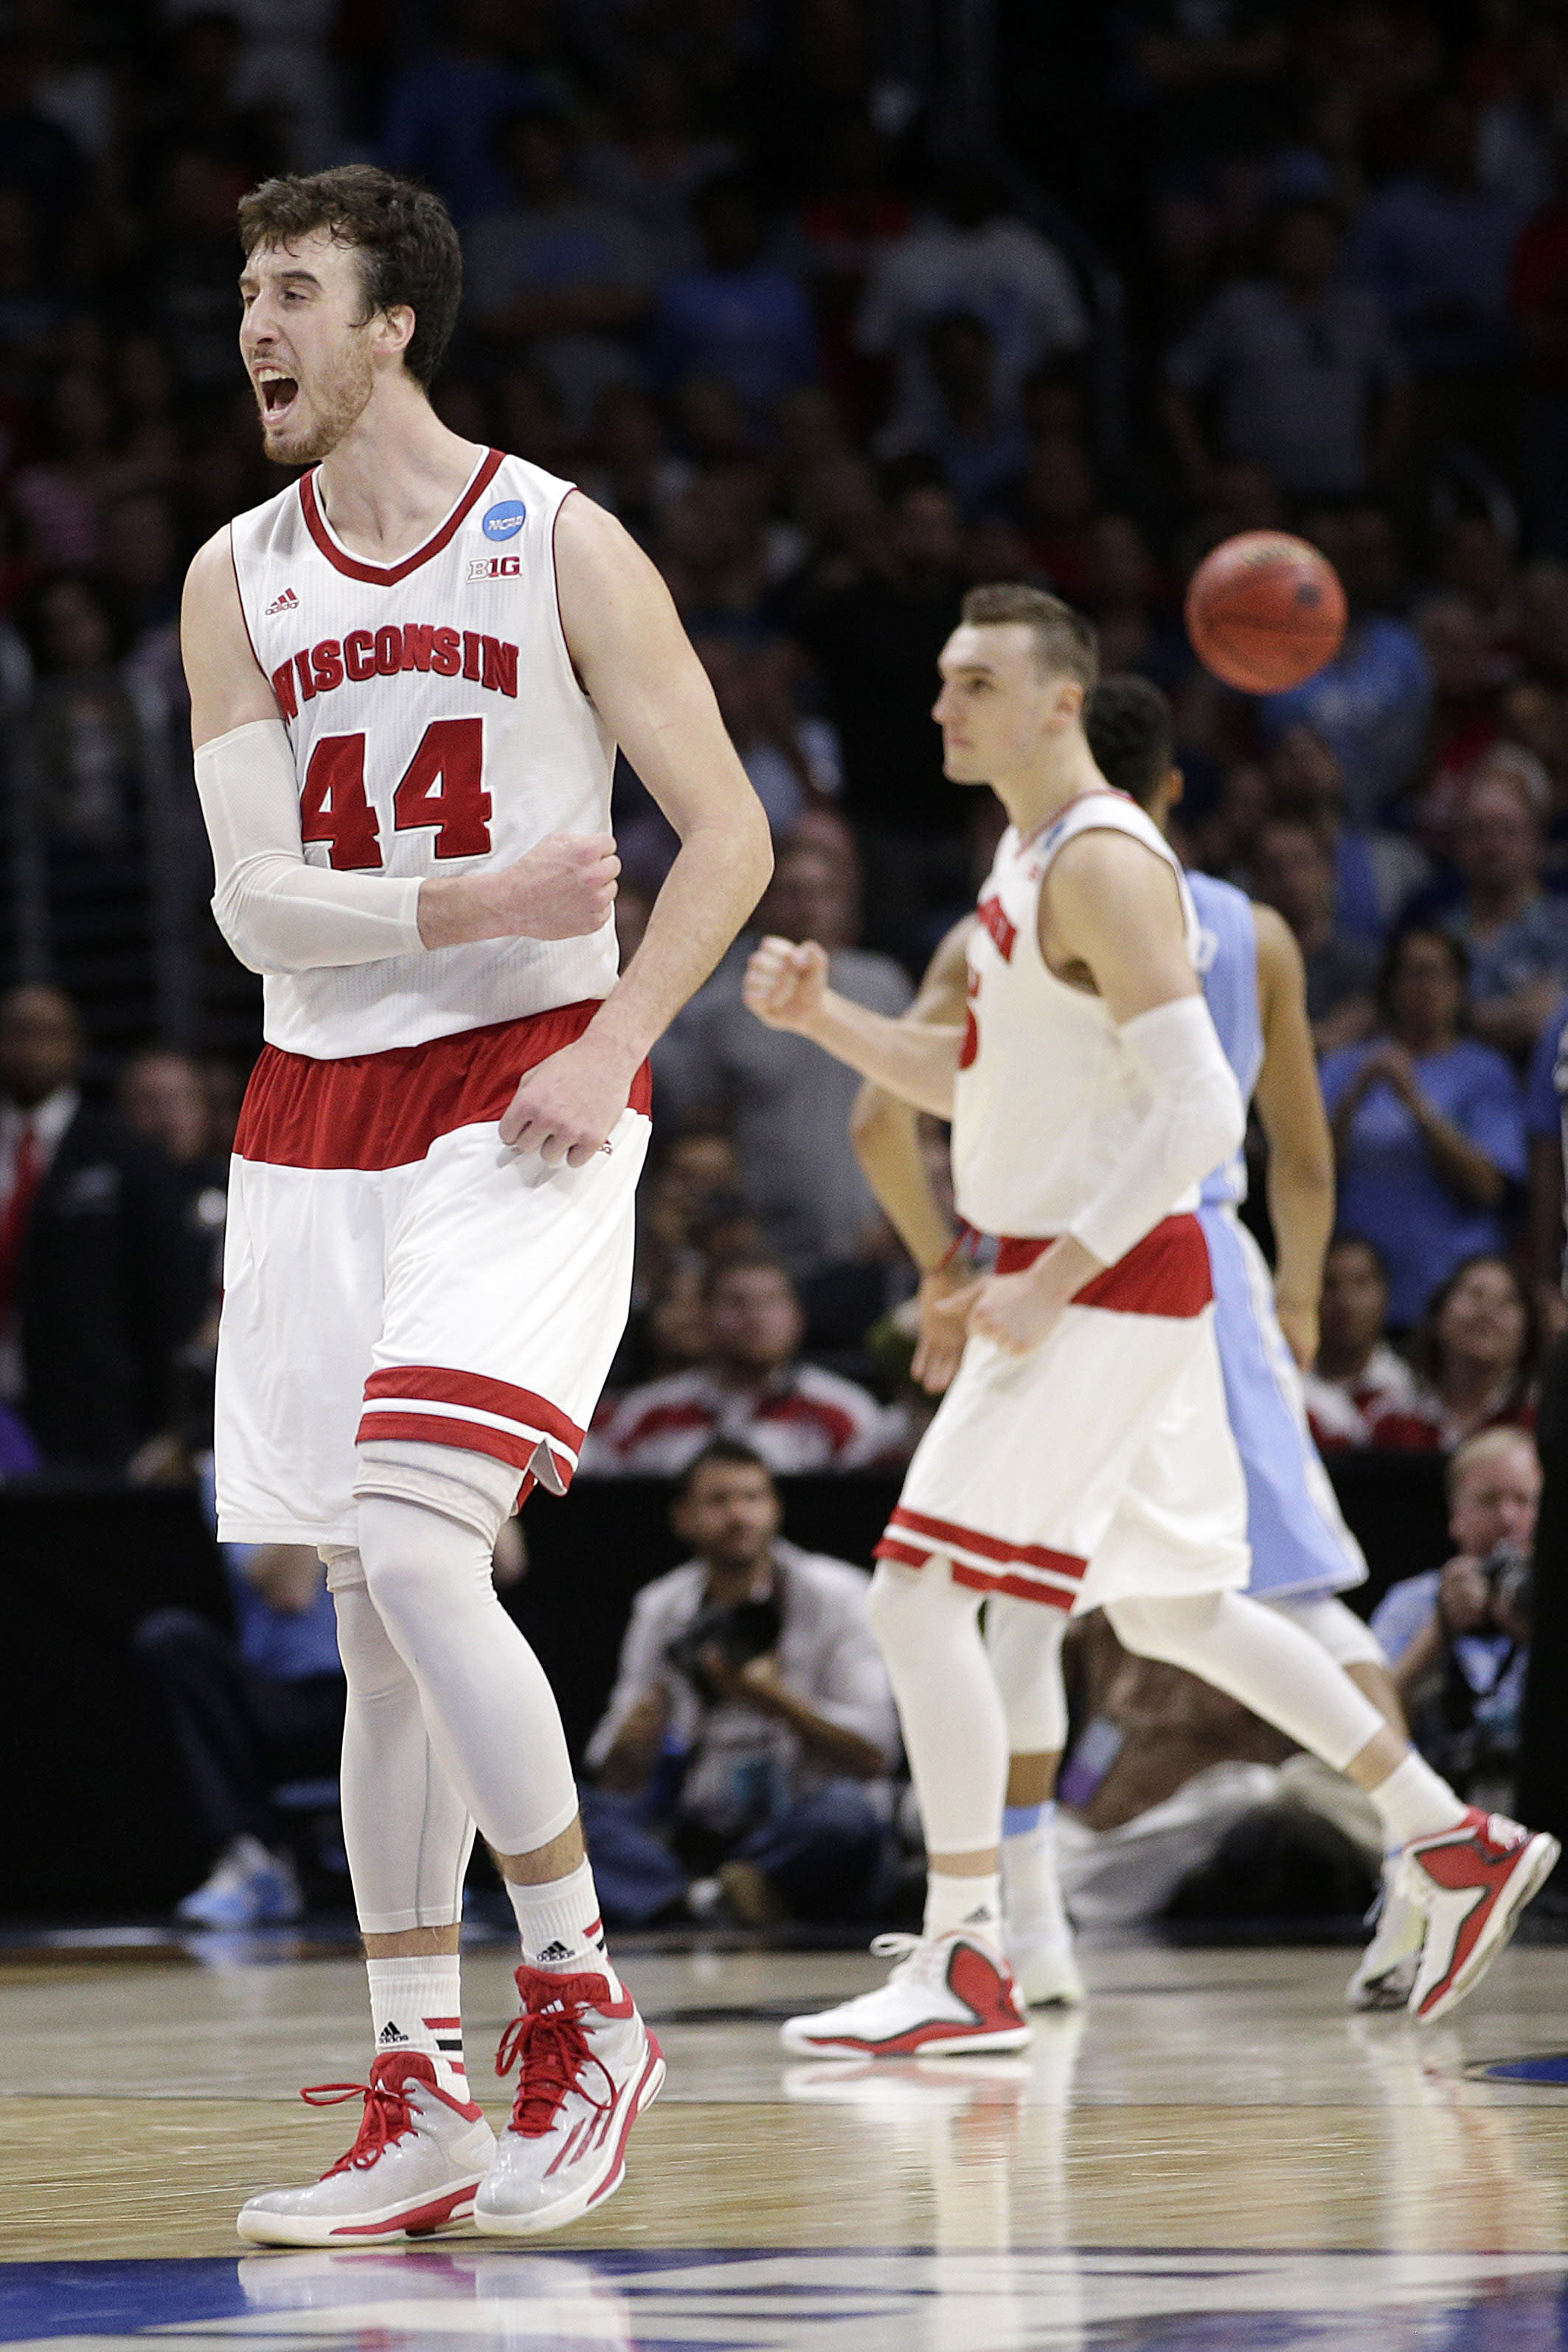 Top-seeded Wisconsin hangs on to beat North Carolina 79-72